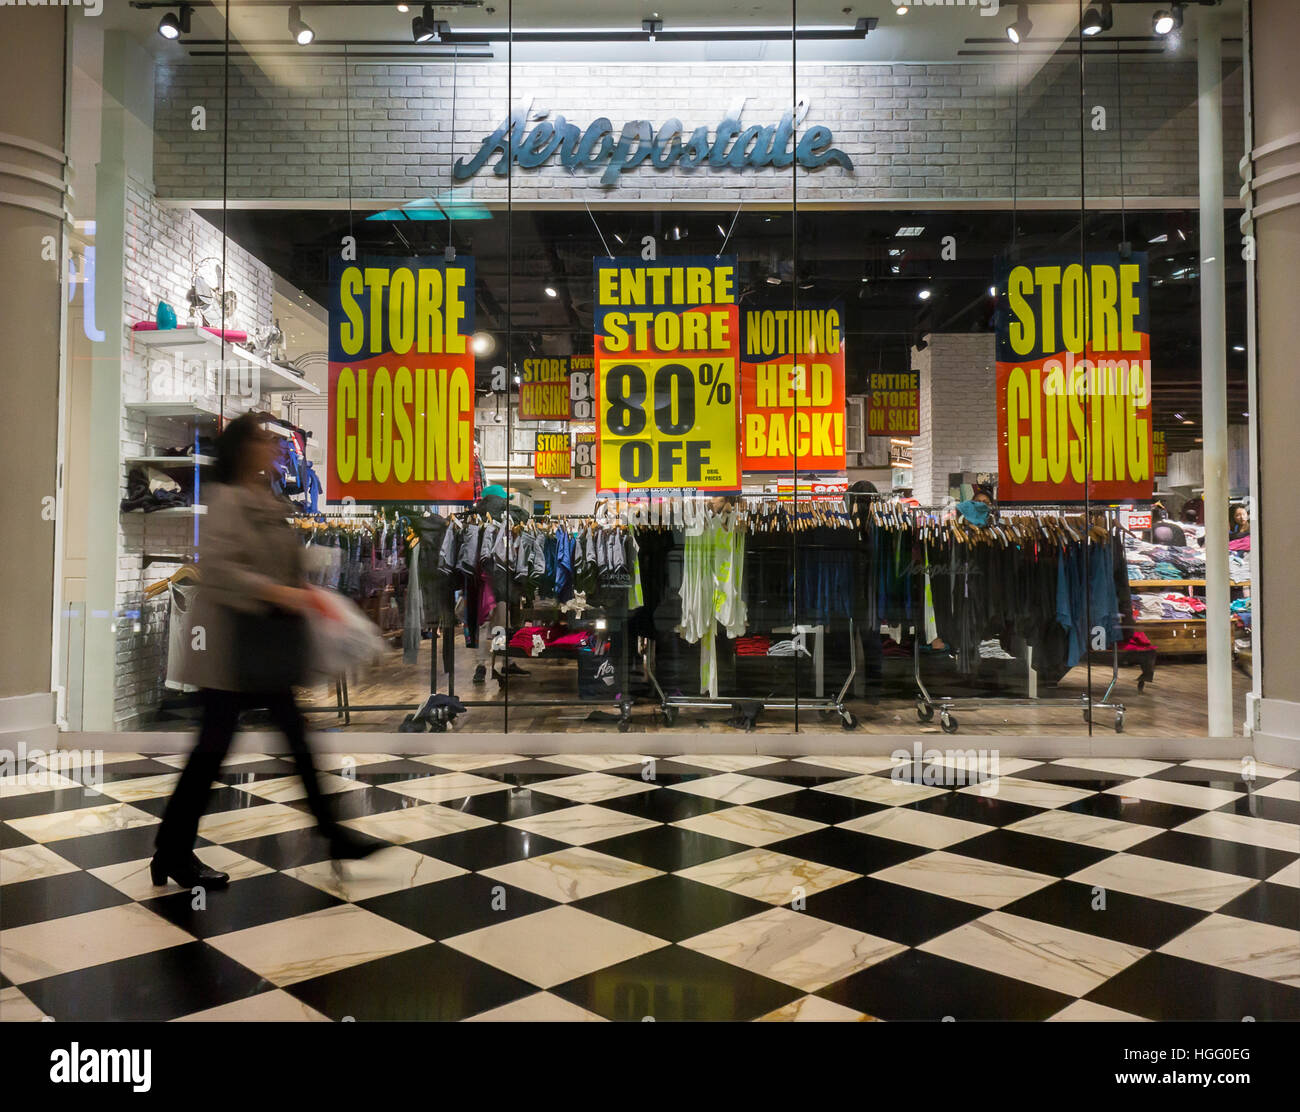 The Aéropostale store in the Manhattan Mall in New York